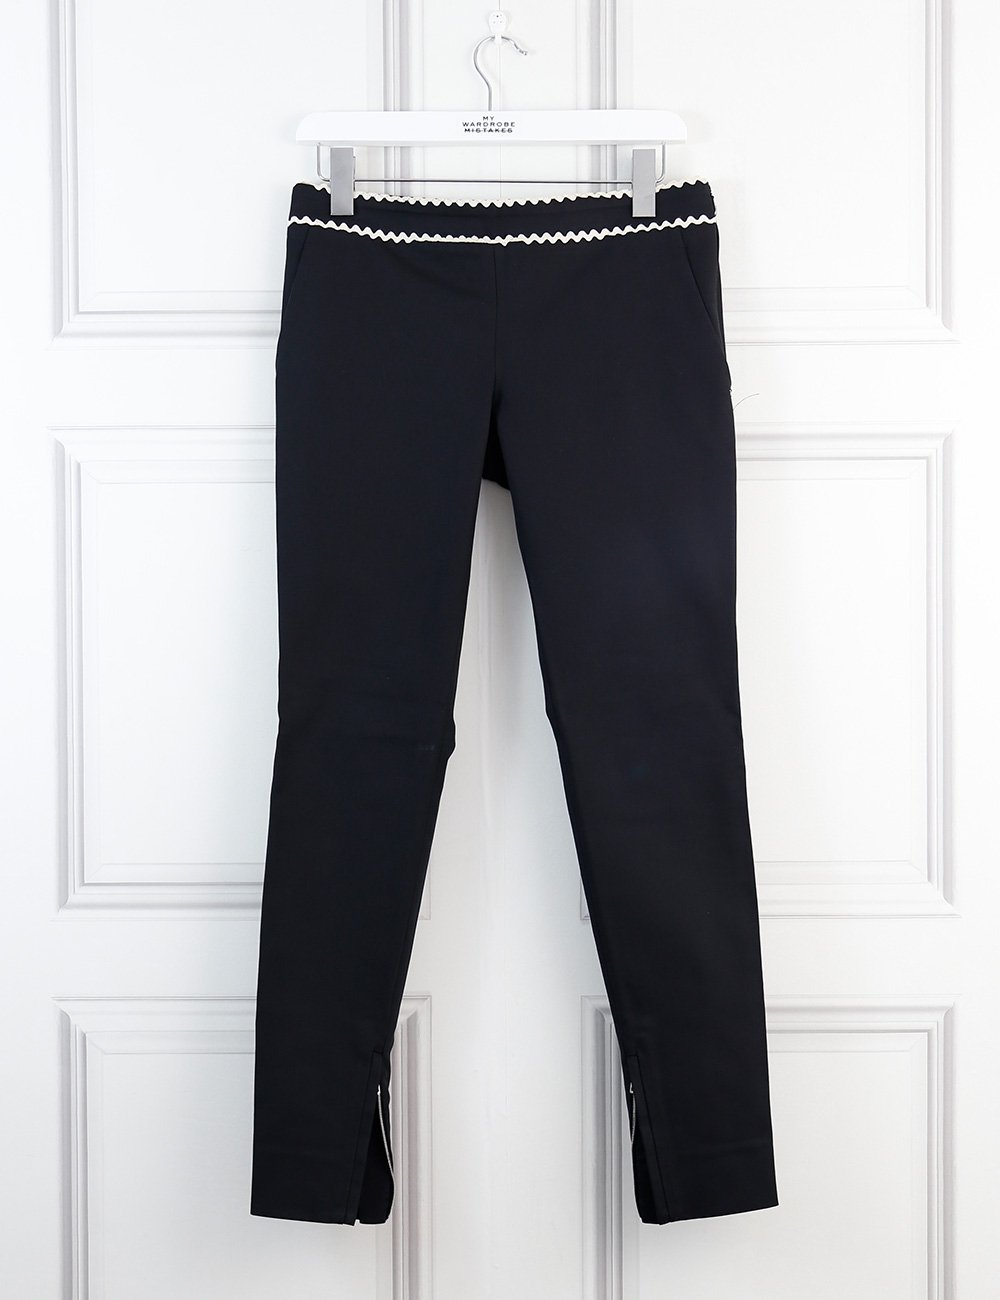 Gucci black tailored trousers with white scalloped details at the waistband 8Uk